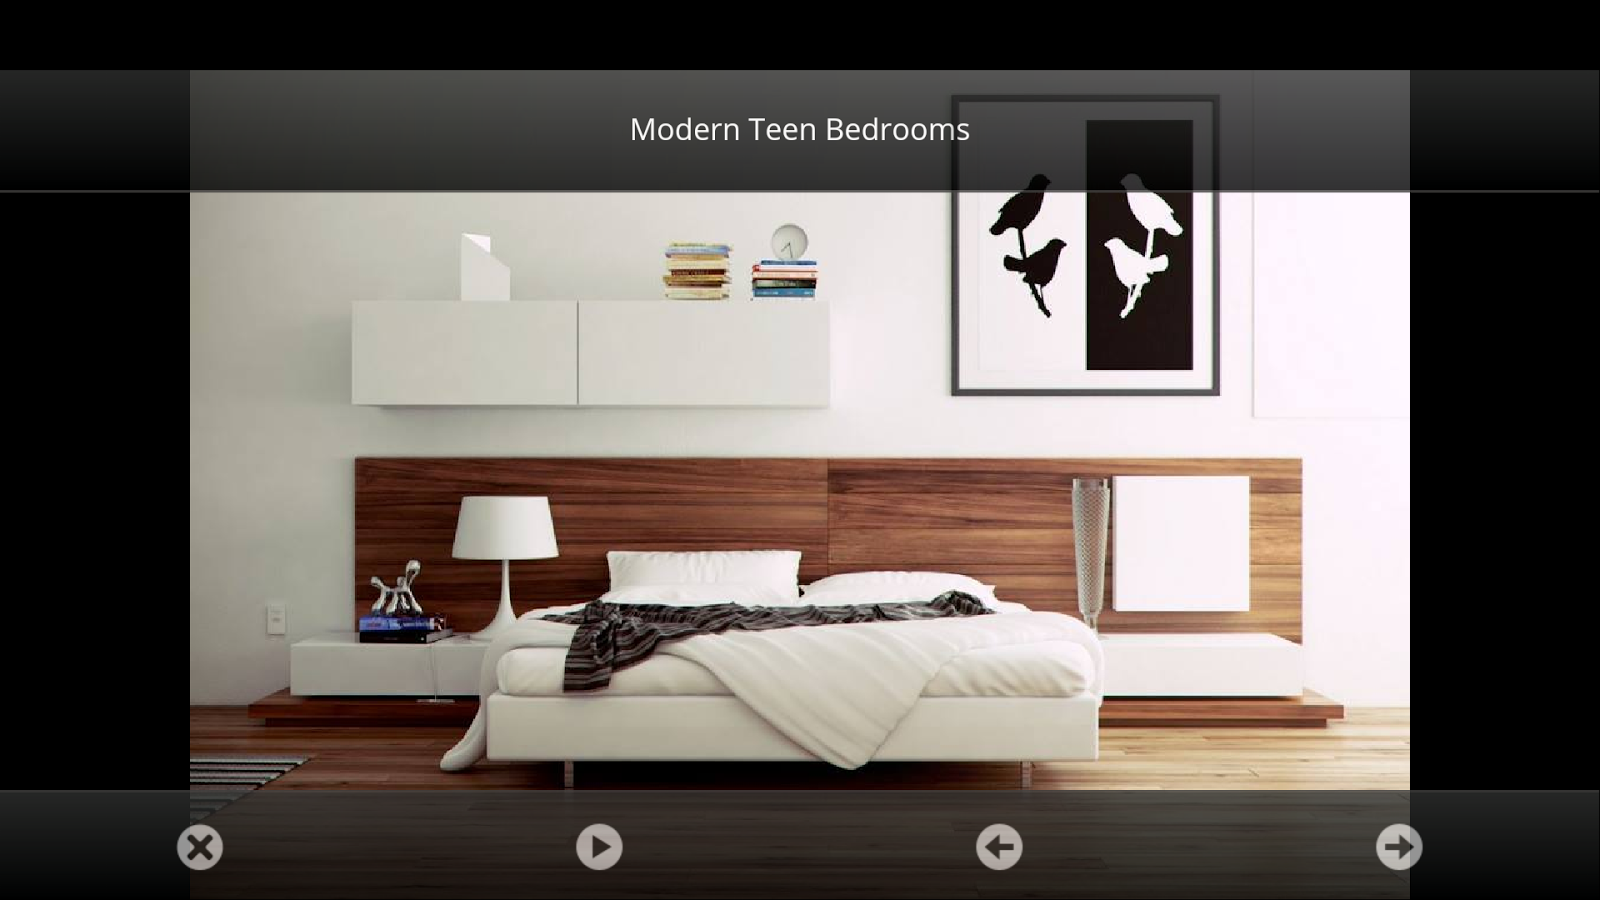 bedroom decorating ideas android apps on google play bedroom decorating ideas screenshot